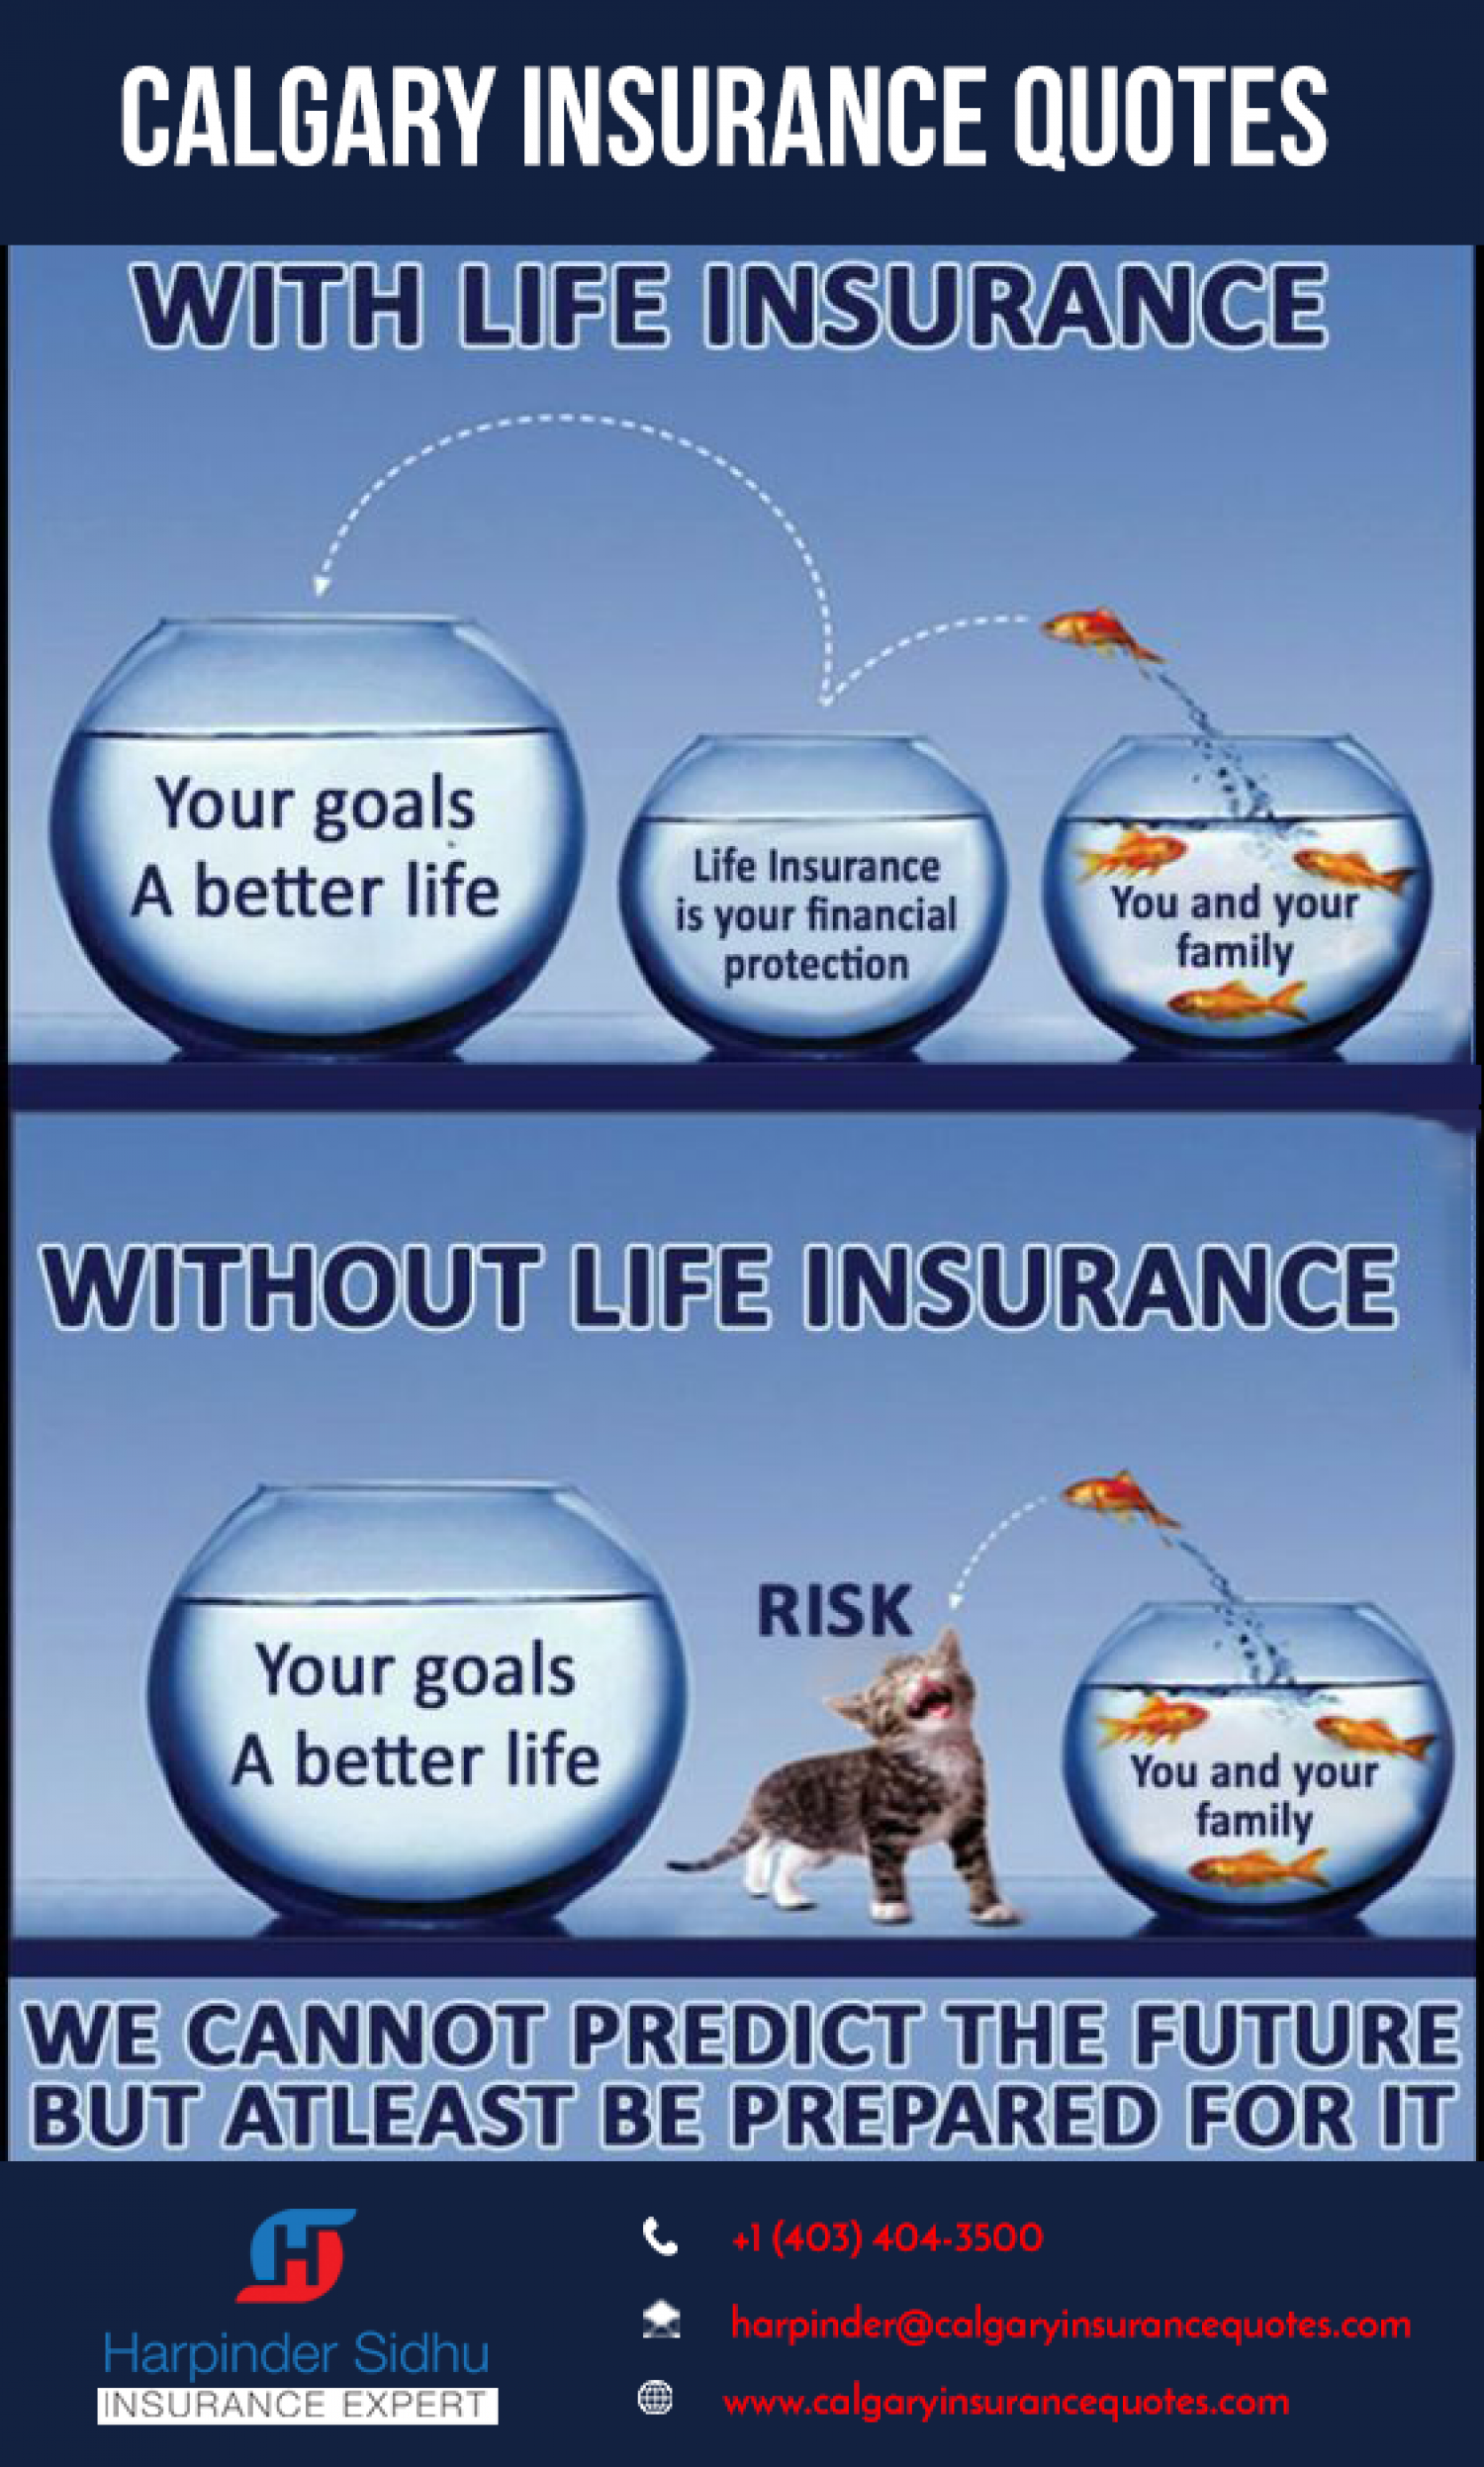 Life Insurance Benefits Harpinder Sidhu Insurance Broker